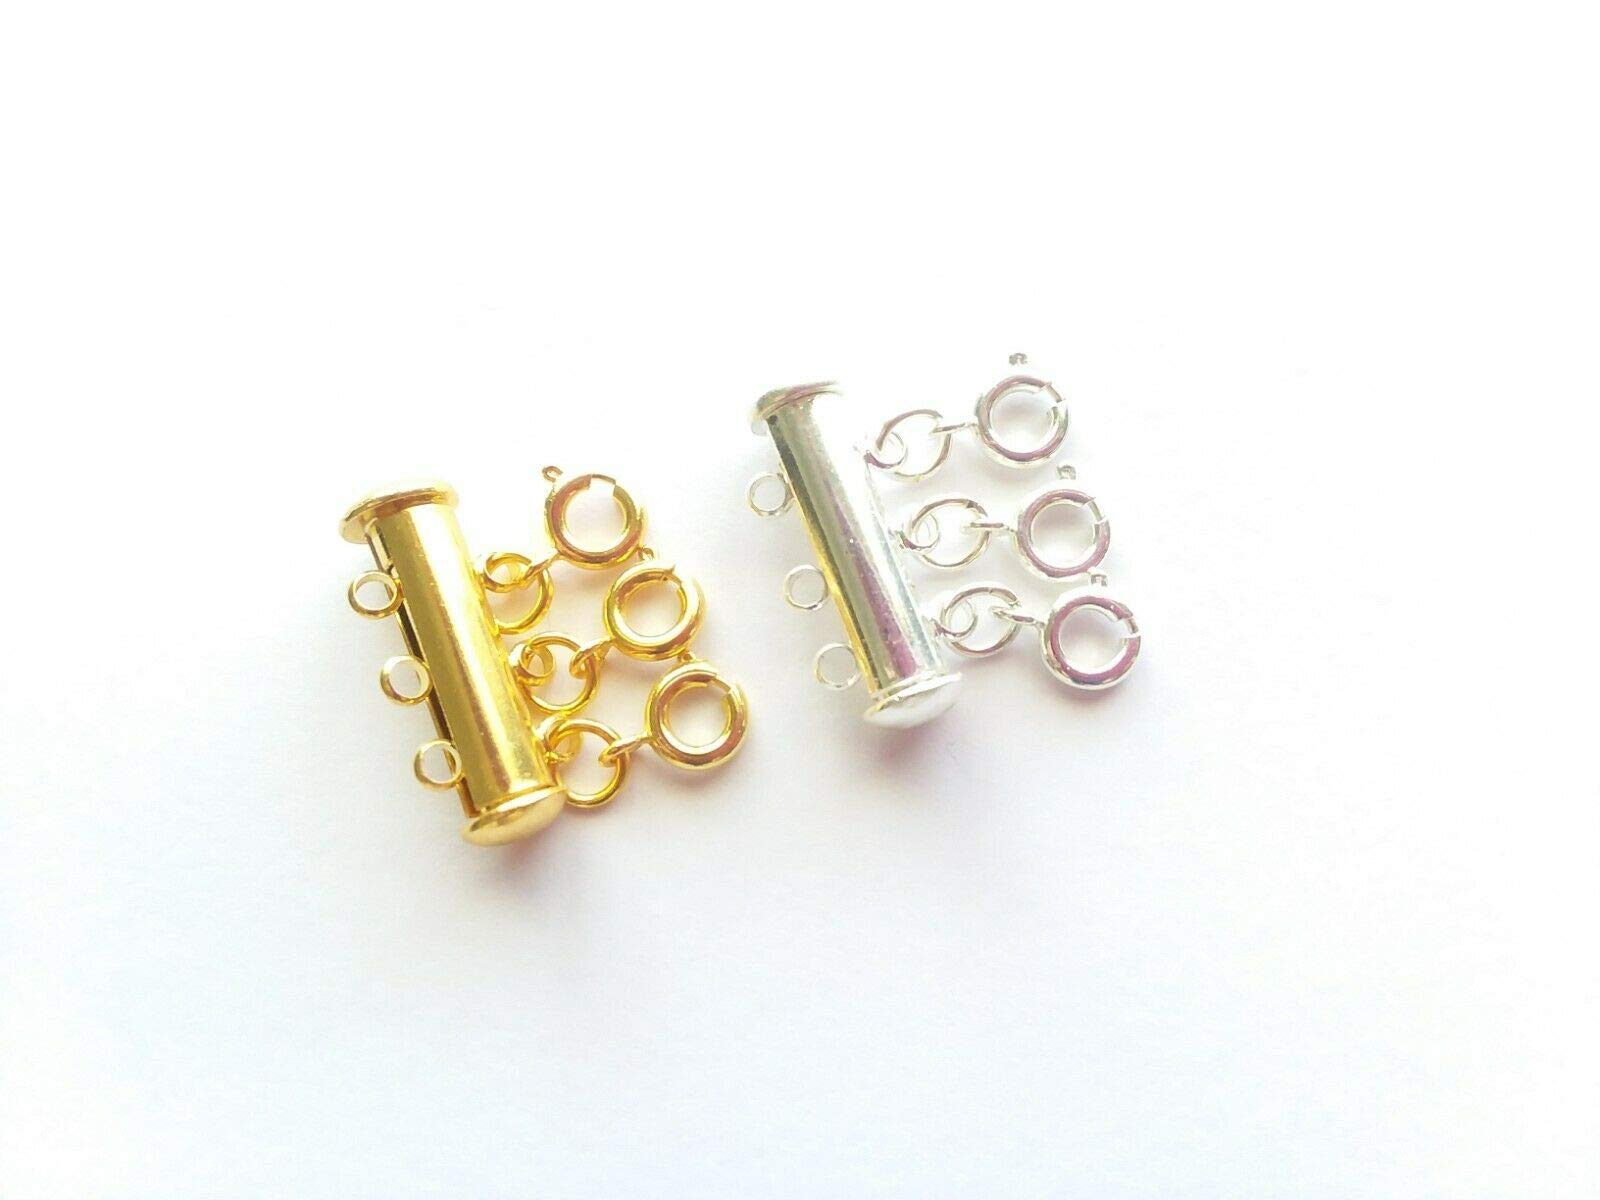 Layered Necklace Spacer Clasp Multi-Strand Layered Necklace Spacer Detangler Clasp - Make You More Clean and Professional 2PCS (Silver & Gold Plated, 3 Strand) by EBINGMIMA